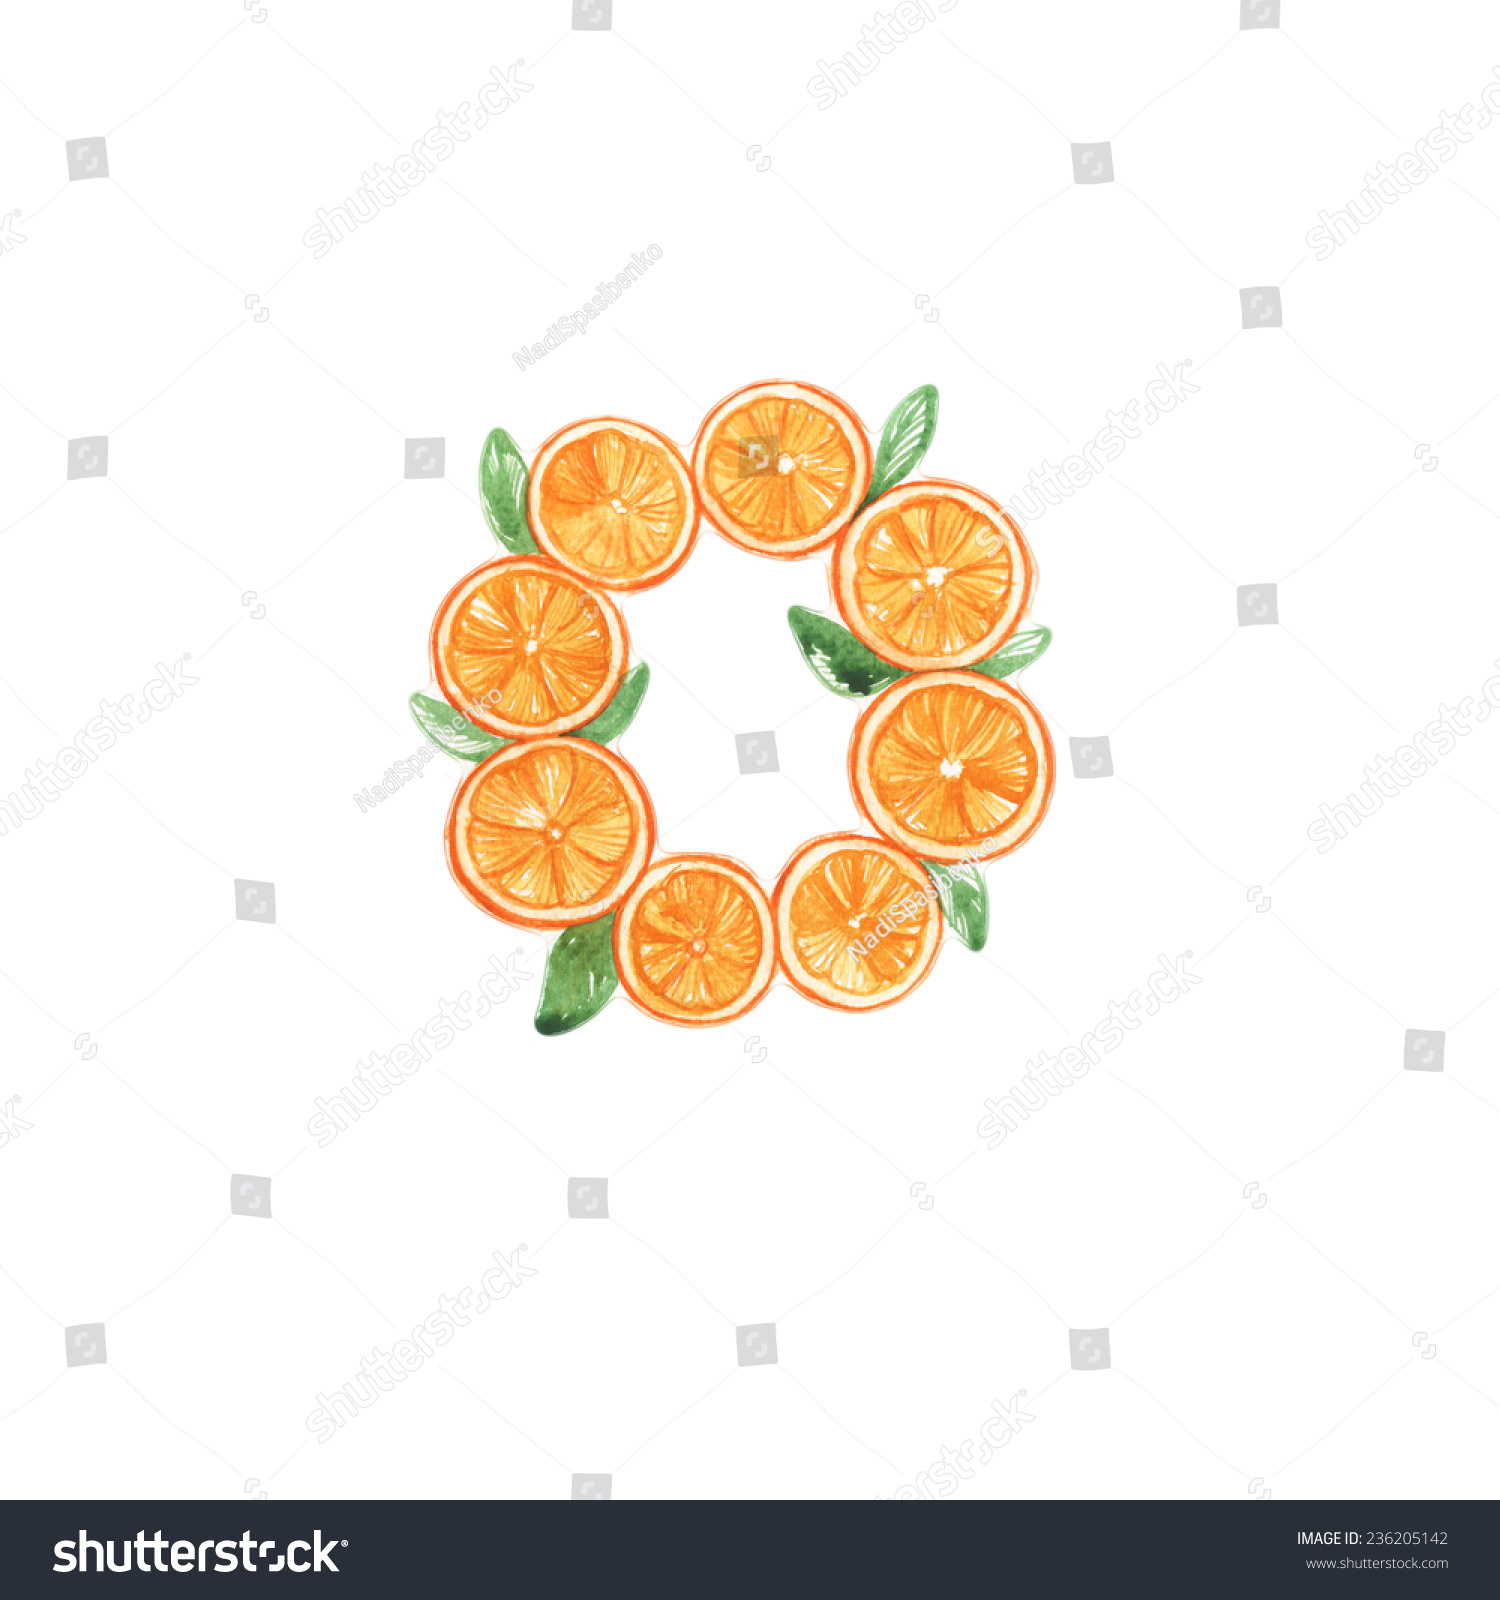 english alphabet cartoon consist letters animal stock illustration consist of letters and animal food letter o orange